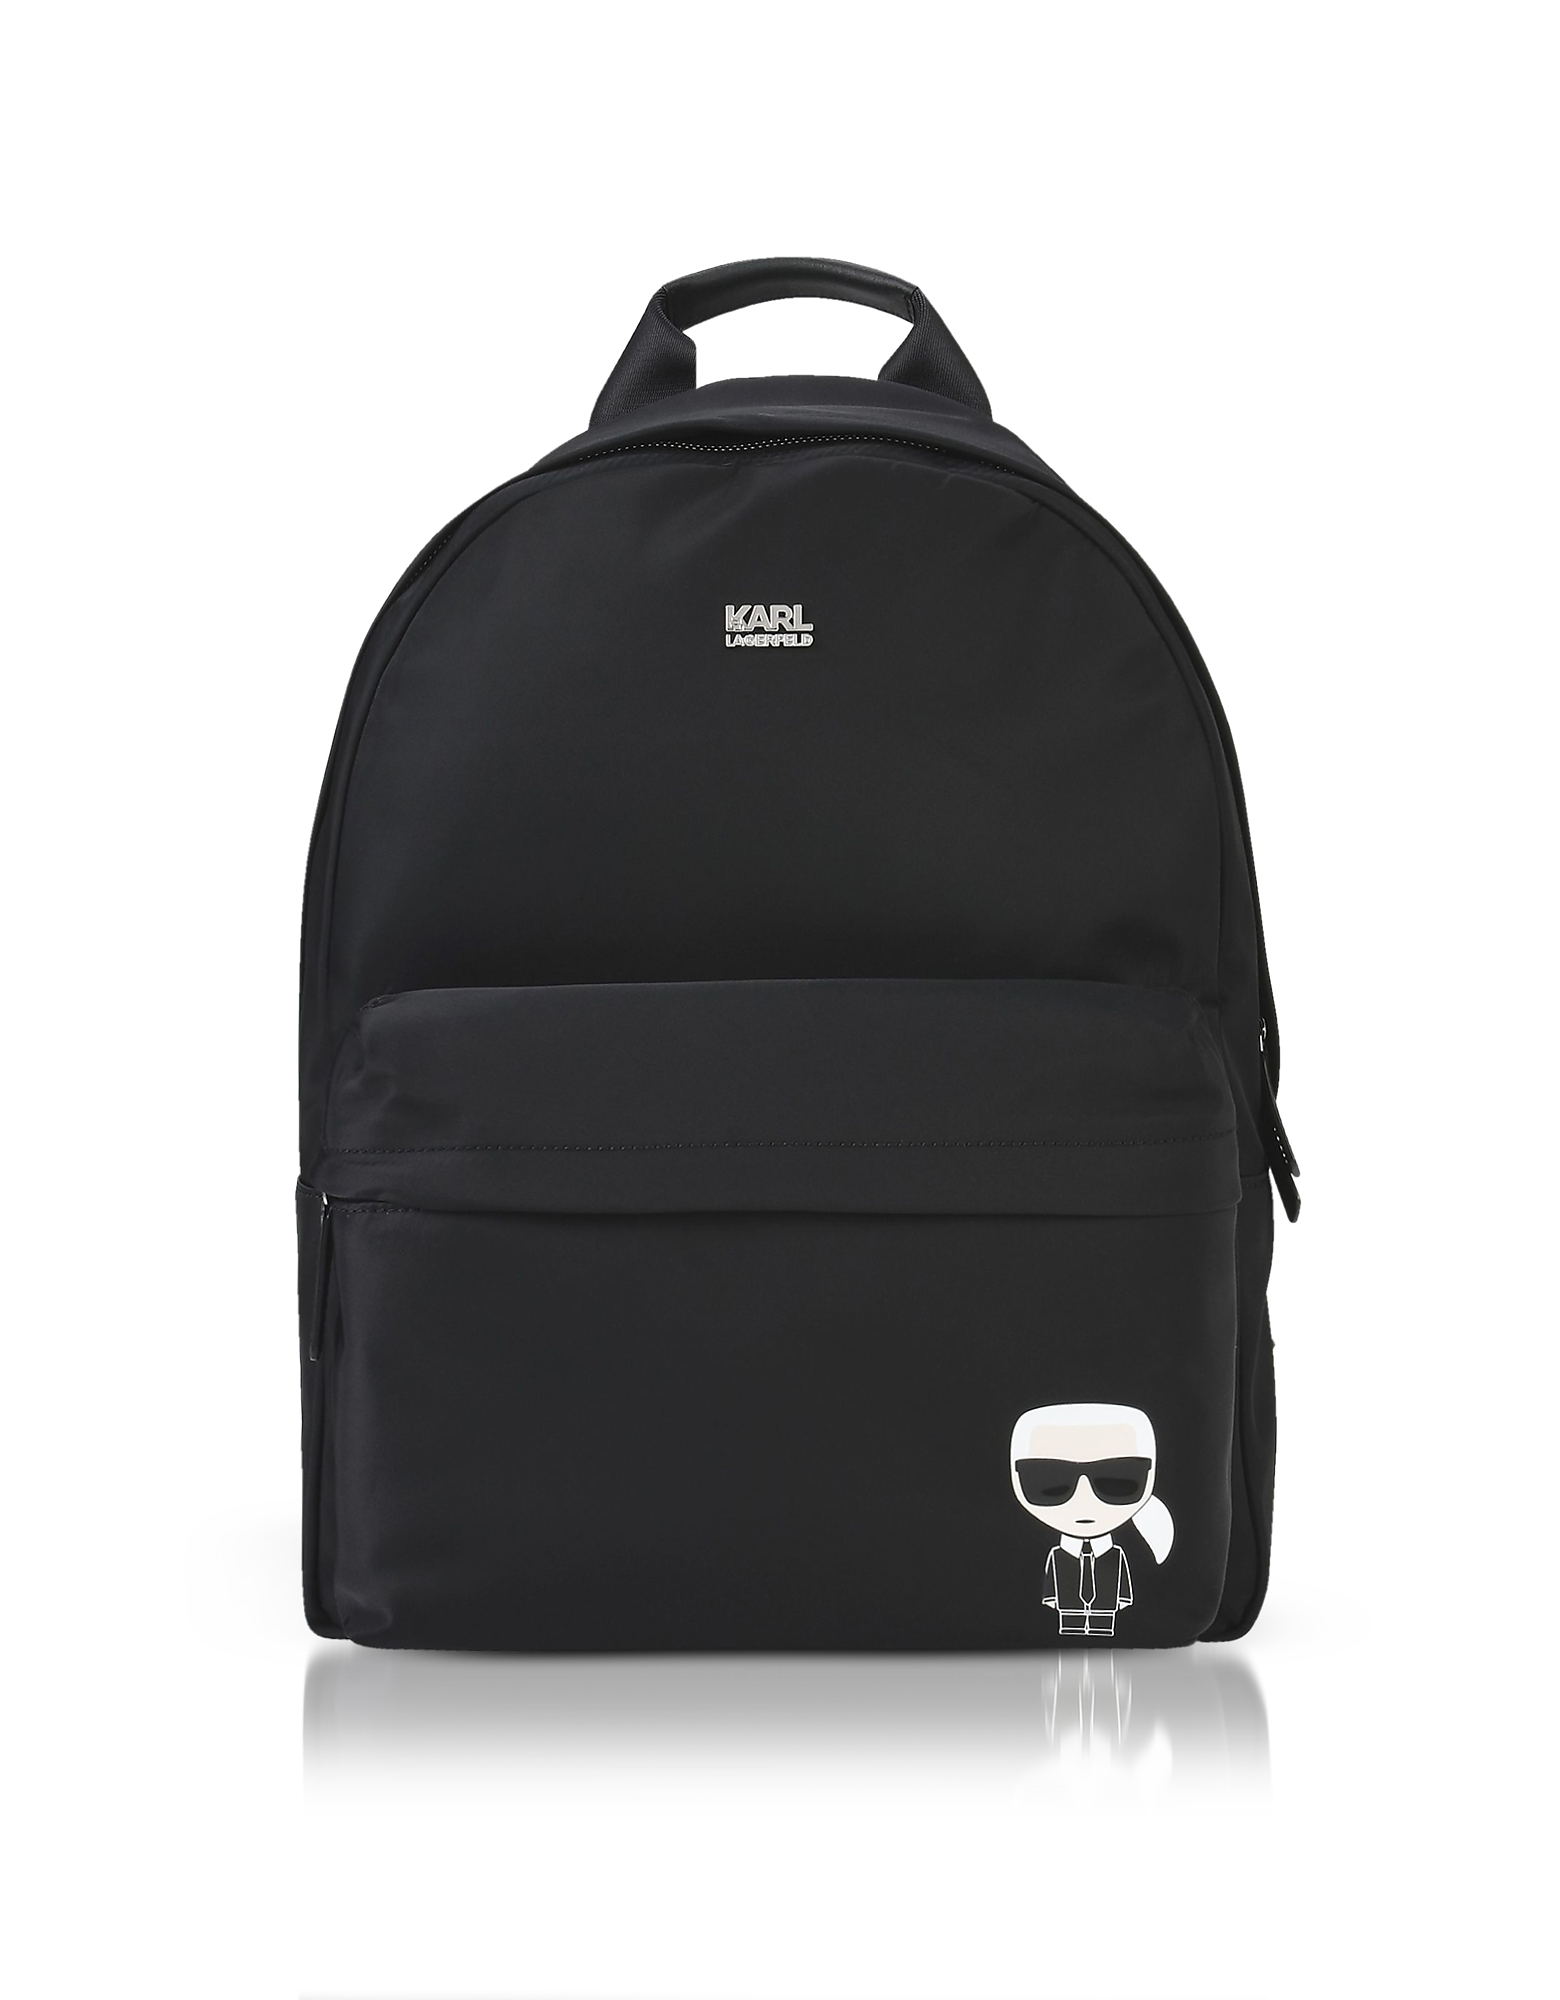 Karl Lagerfeld Handbags, K/Ikonik Nylon Backpack